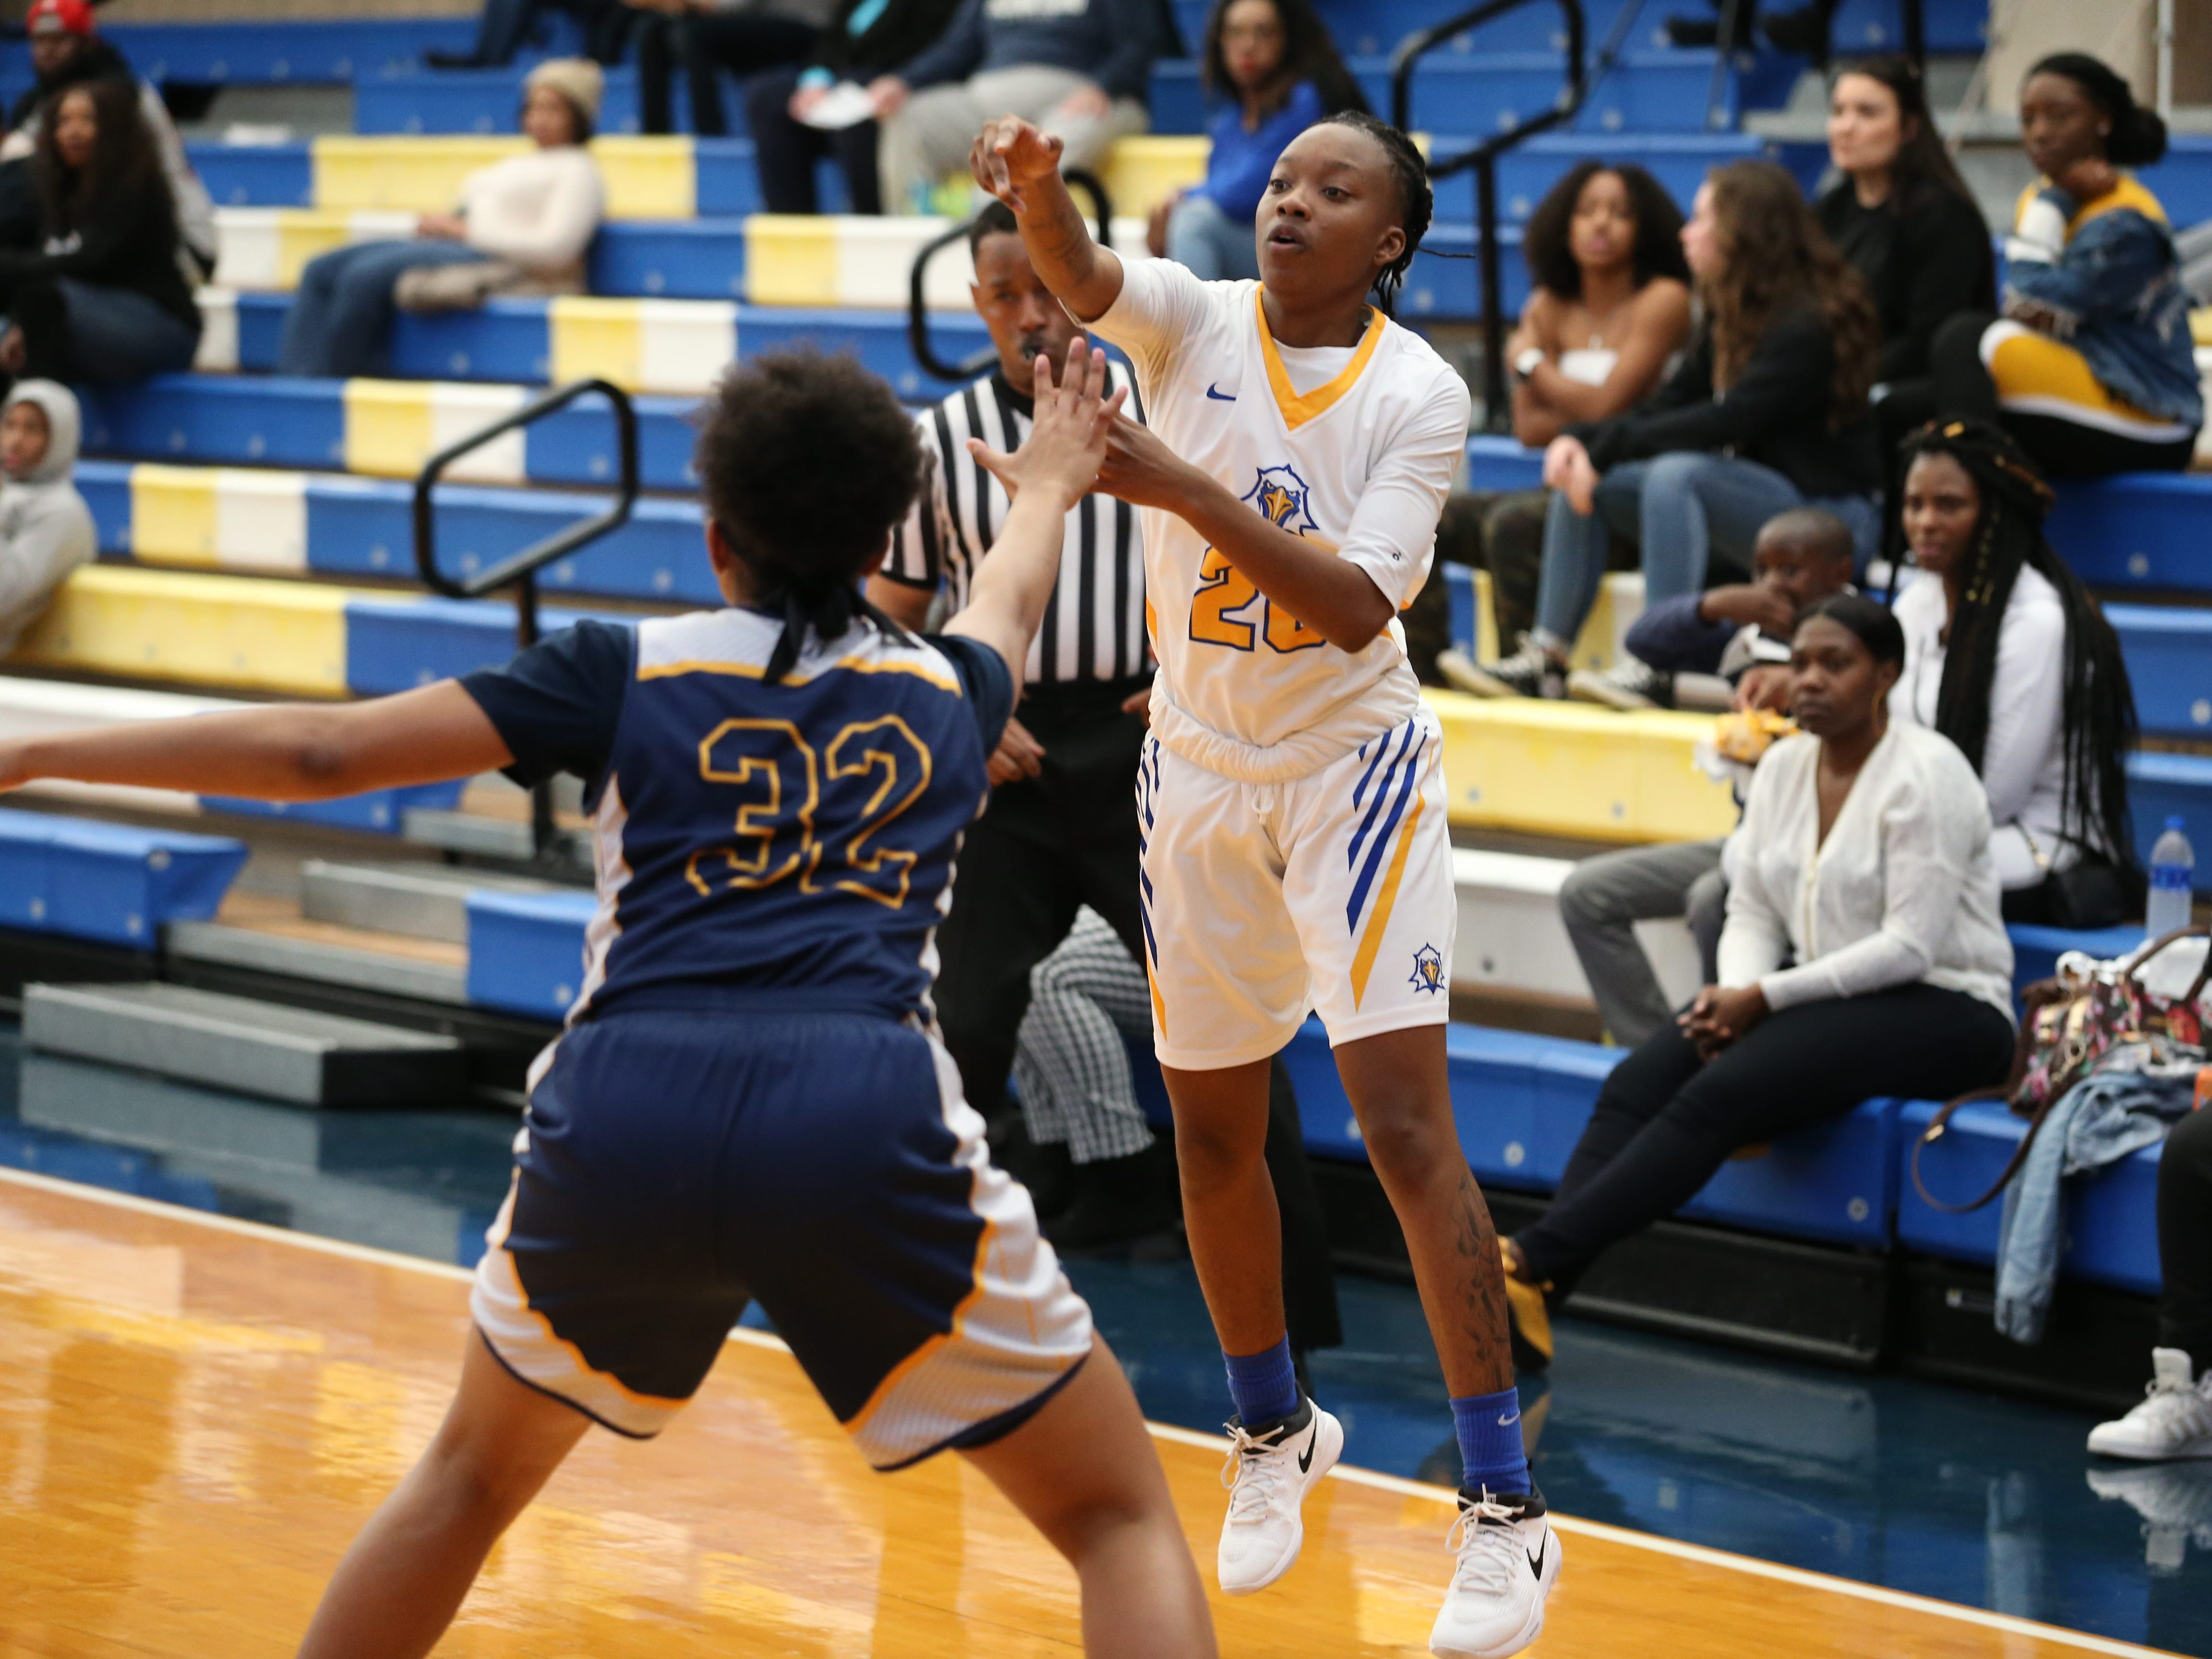 Tallahassee Community College Eagles guard Juliunn Redmond (23) passes over her defender to a teammate. The Tallahassee Community College Eagles host the Gulf Coast State College Commodores in a conference match-up in the Eagledome, Saturday, Jan. 5, 2019.